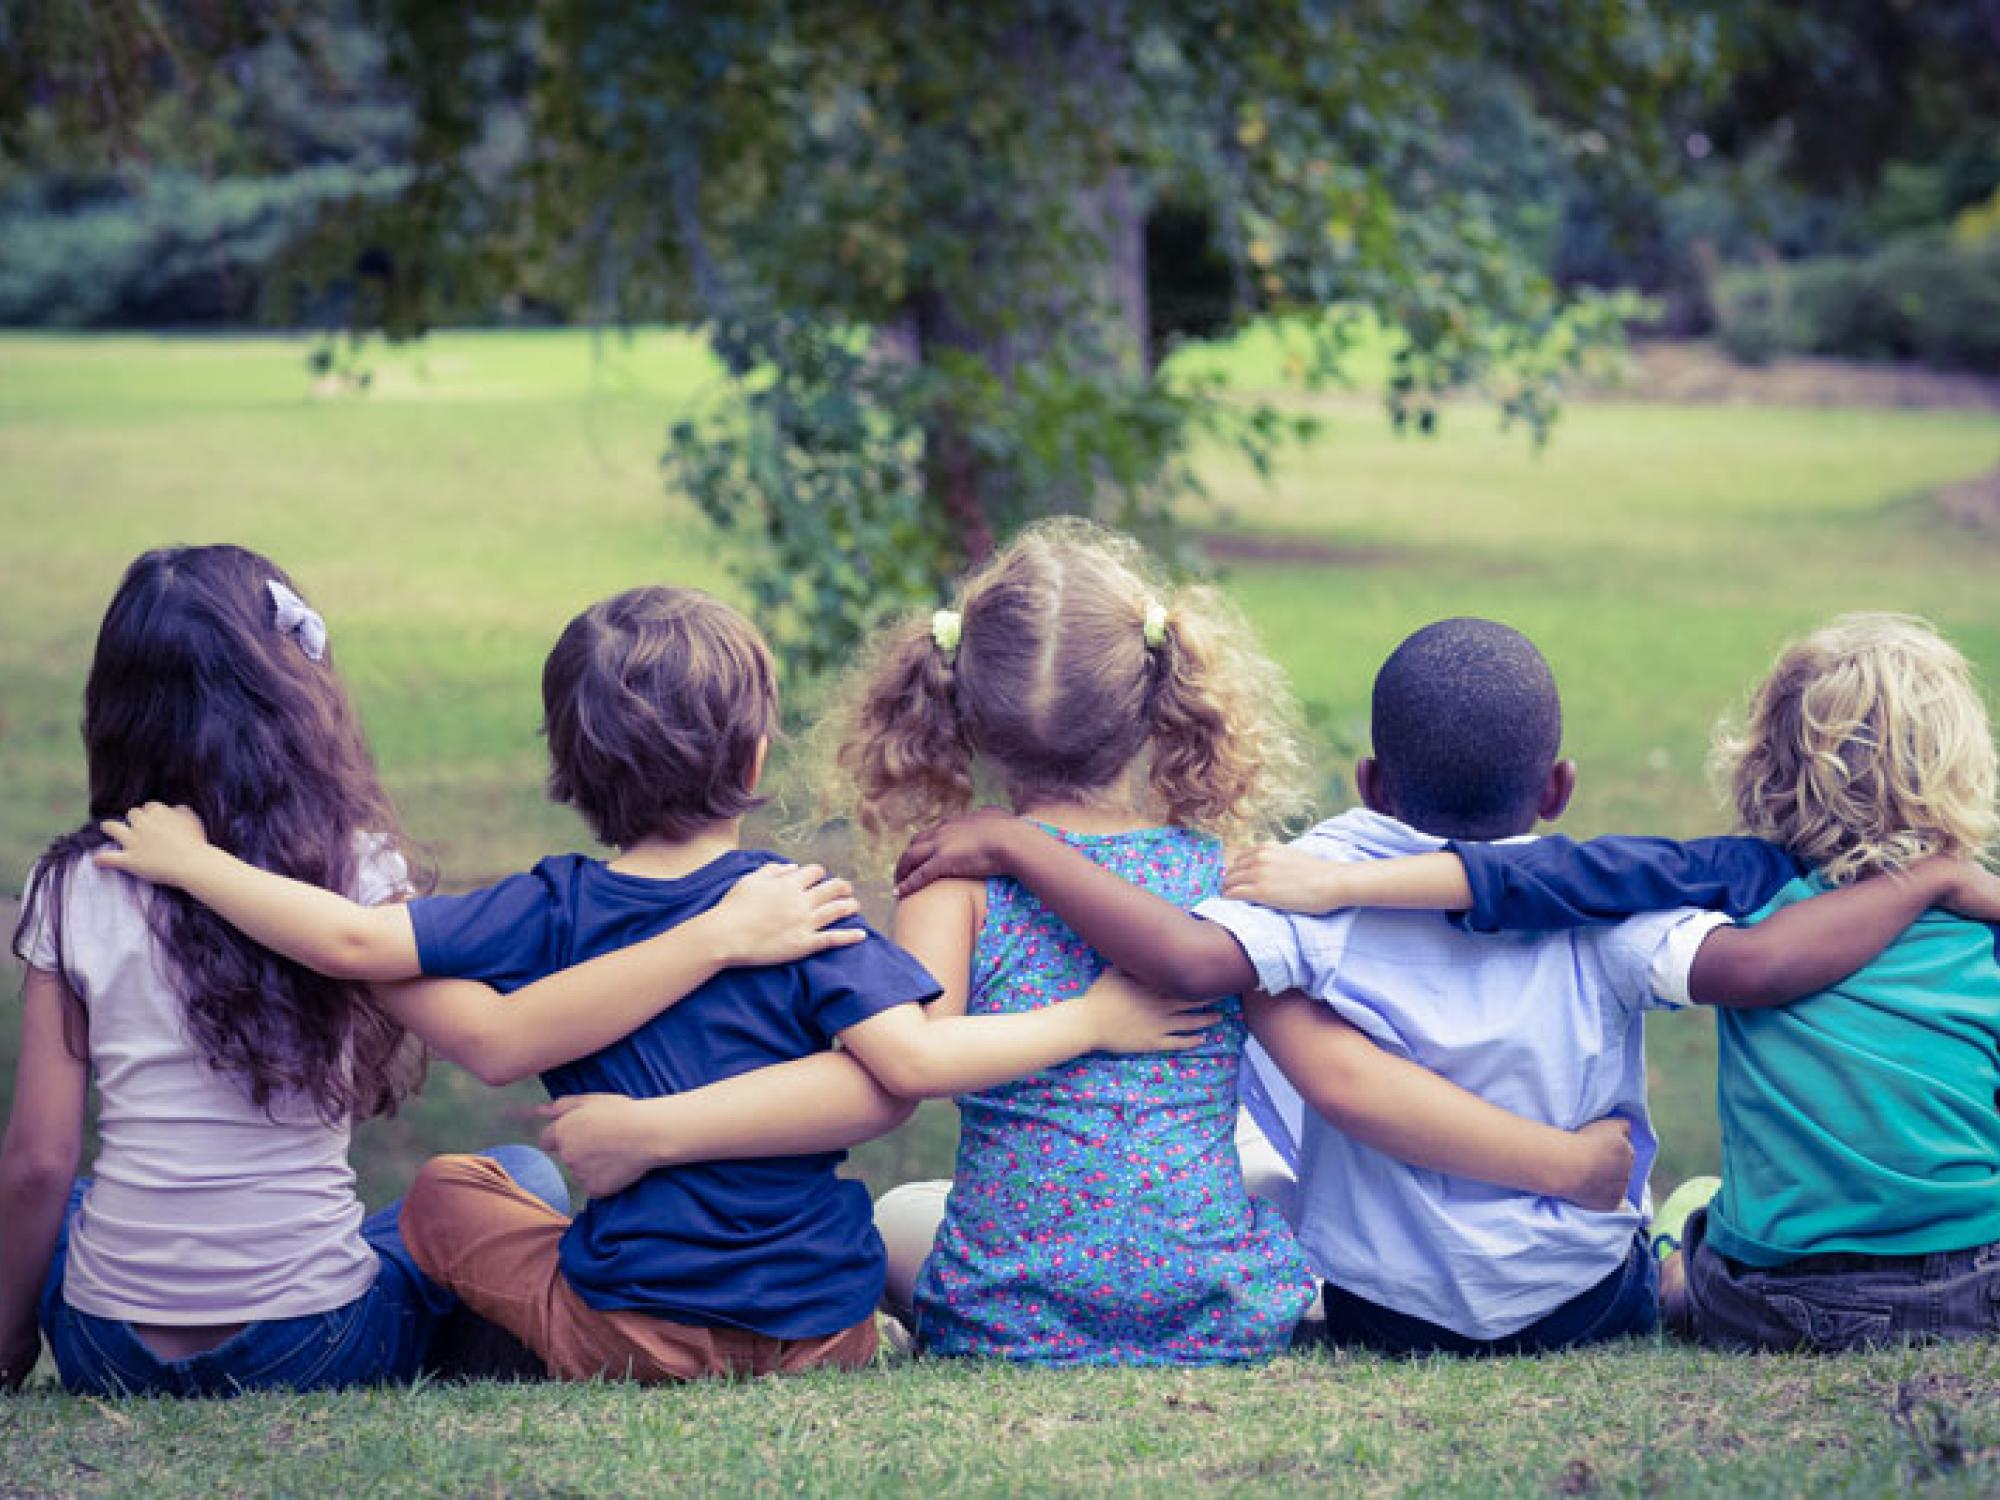 Five children sit arm in arm in the park.